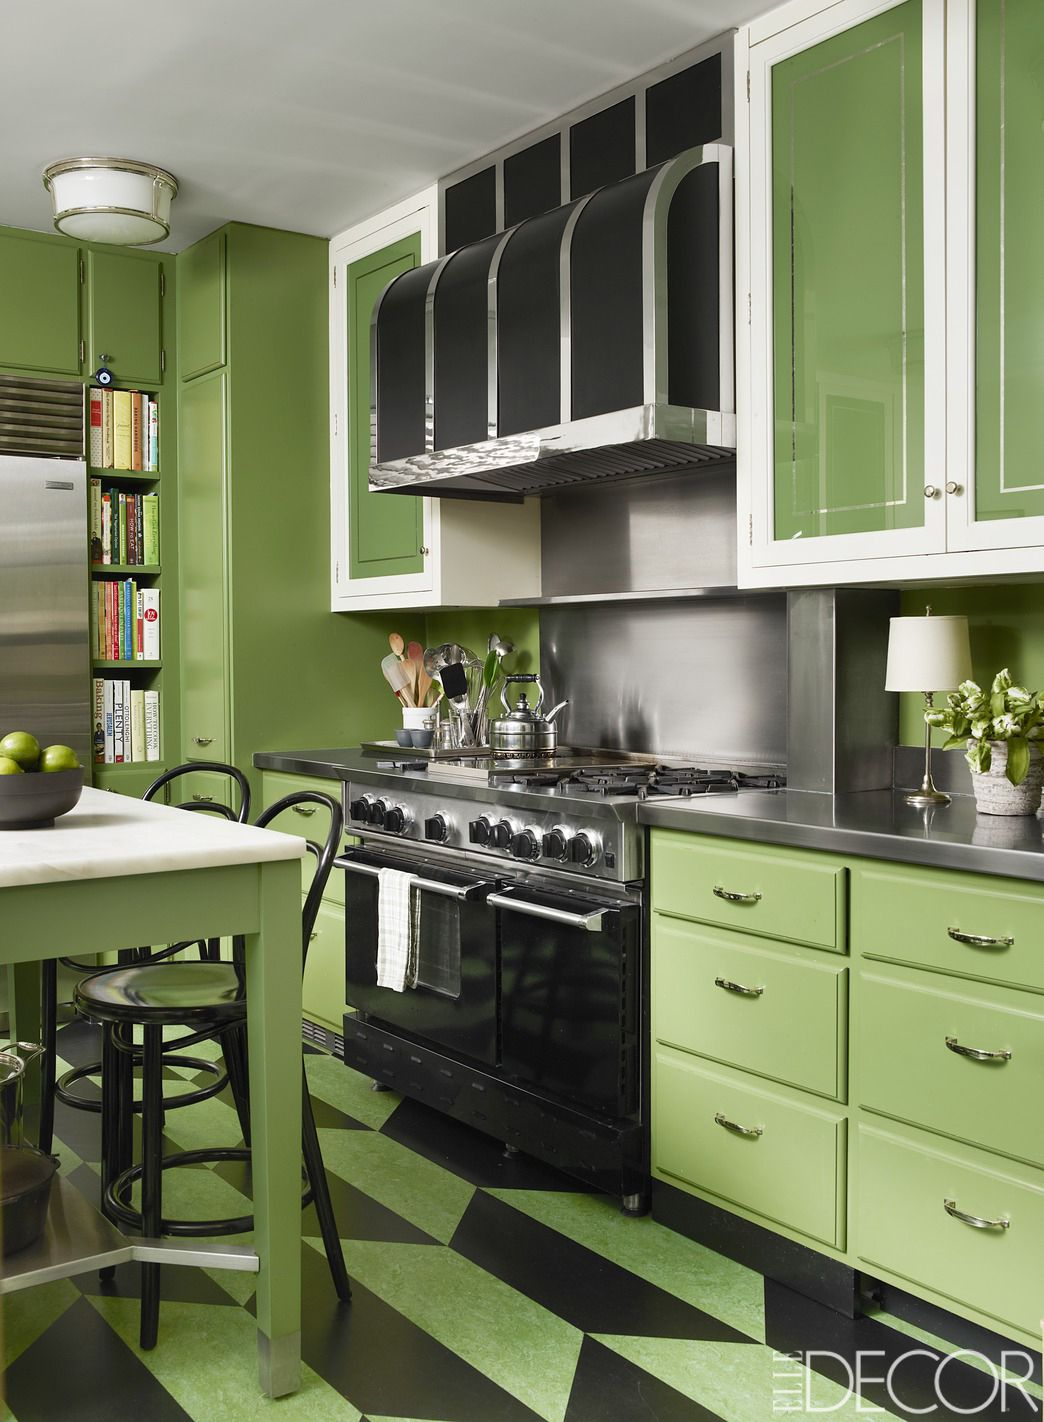 kitchens designs.  50 Small Kitchen Design Ideas Decorating Tiny Kitchens